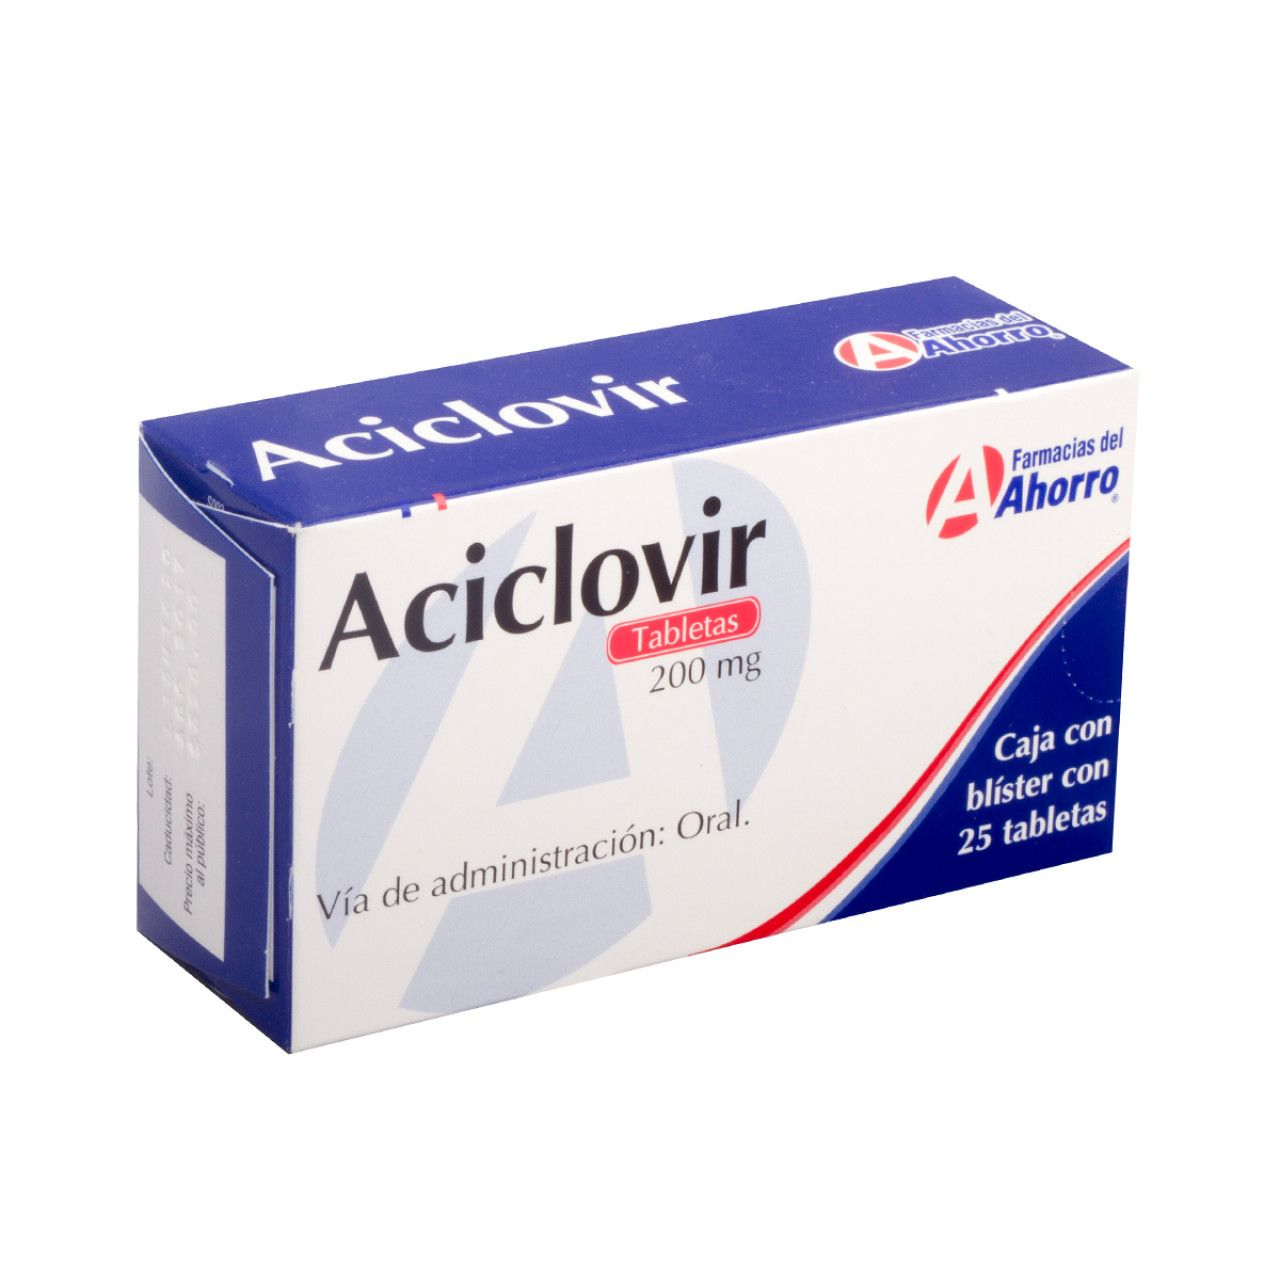 aciclovir hpv treatment)